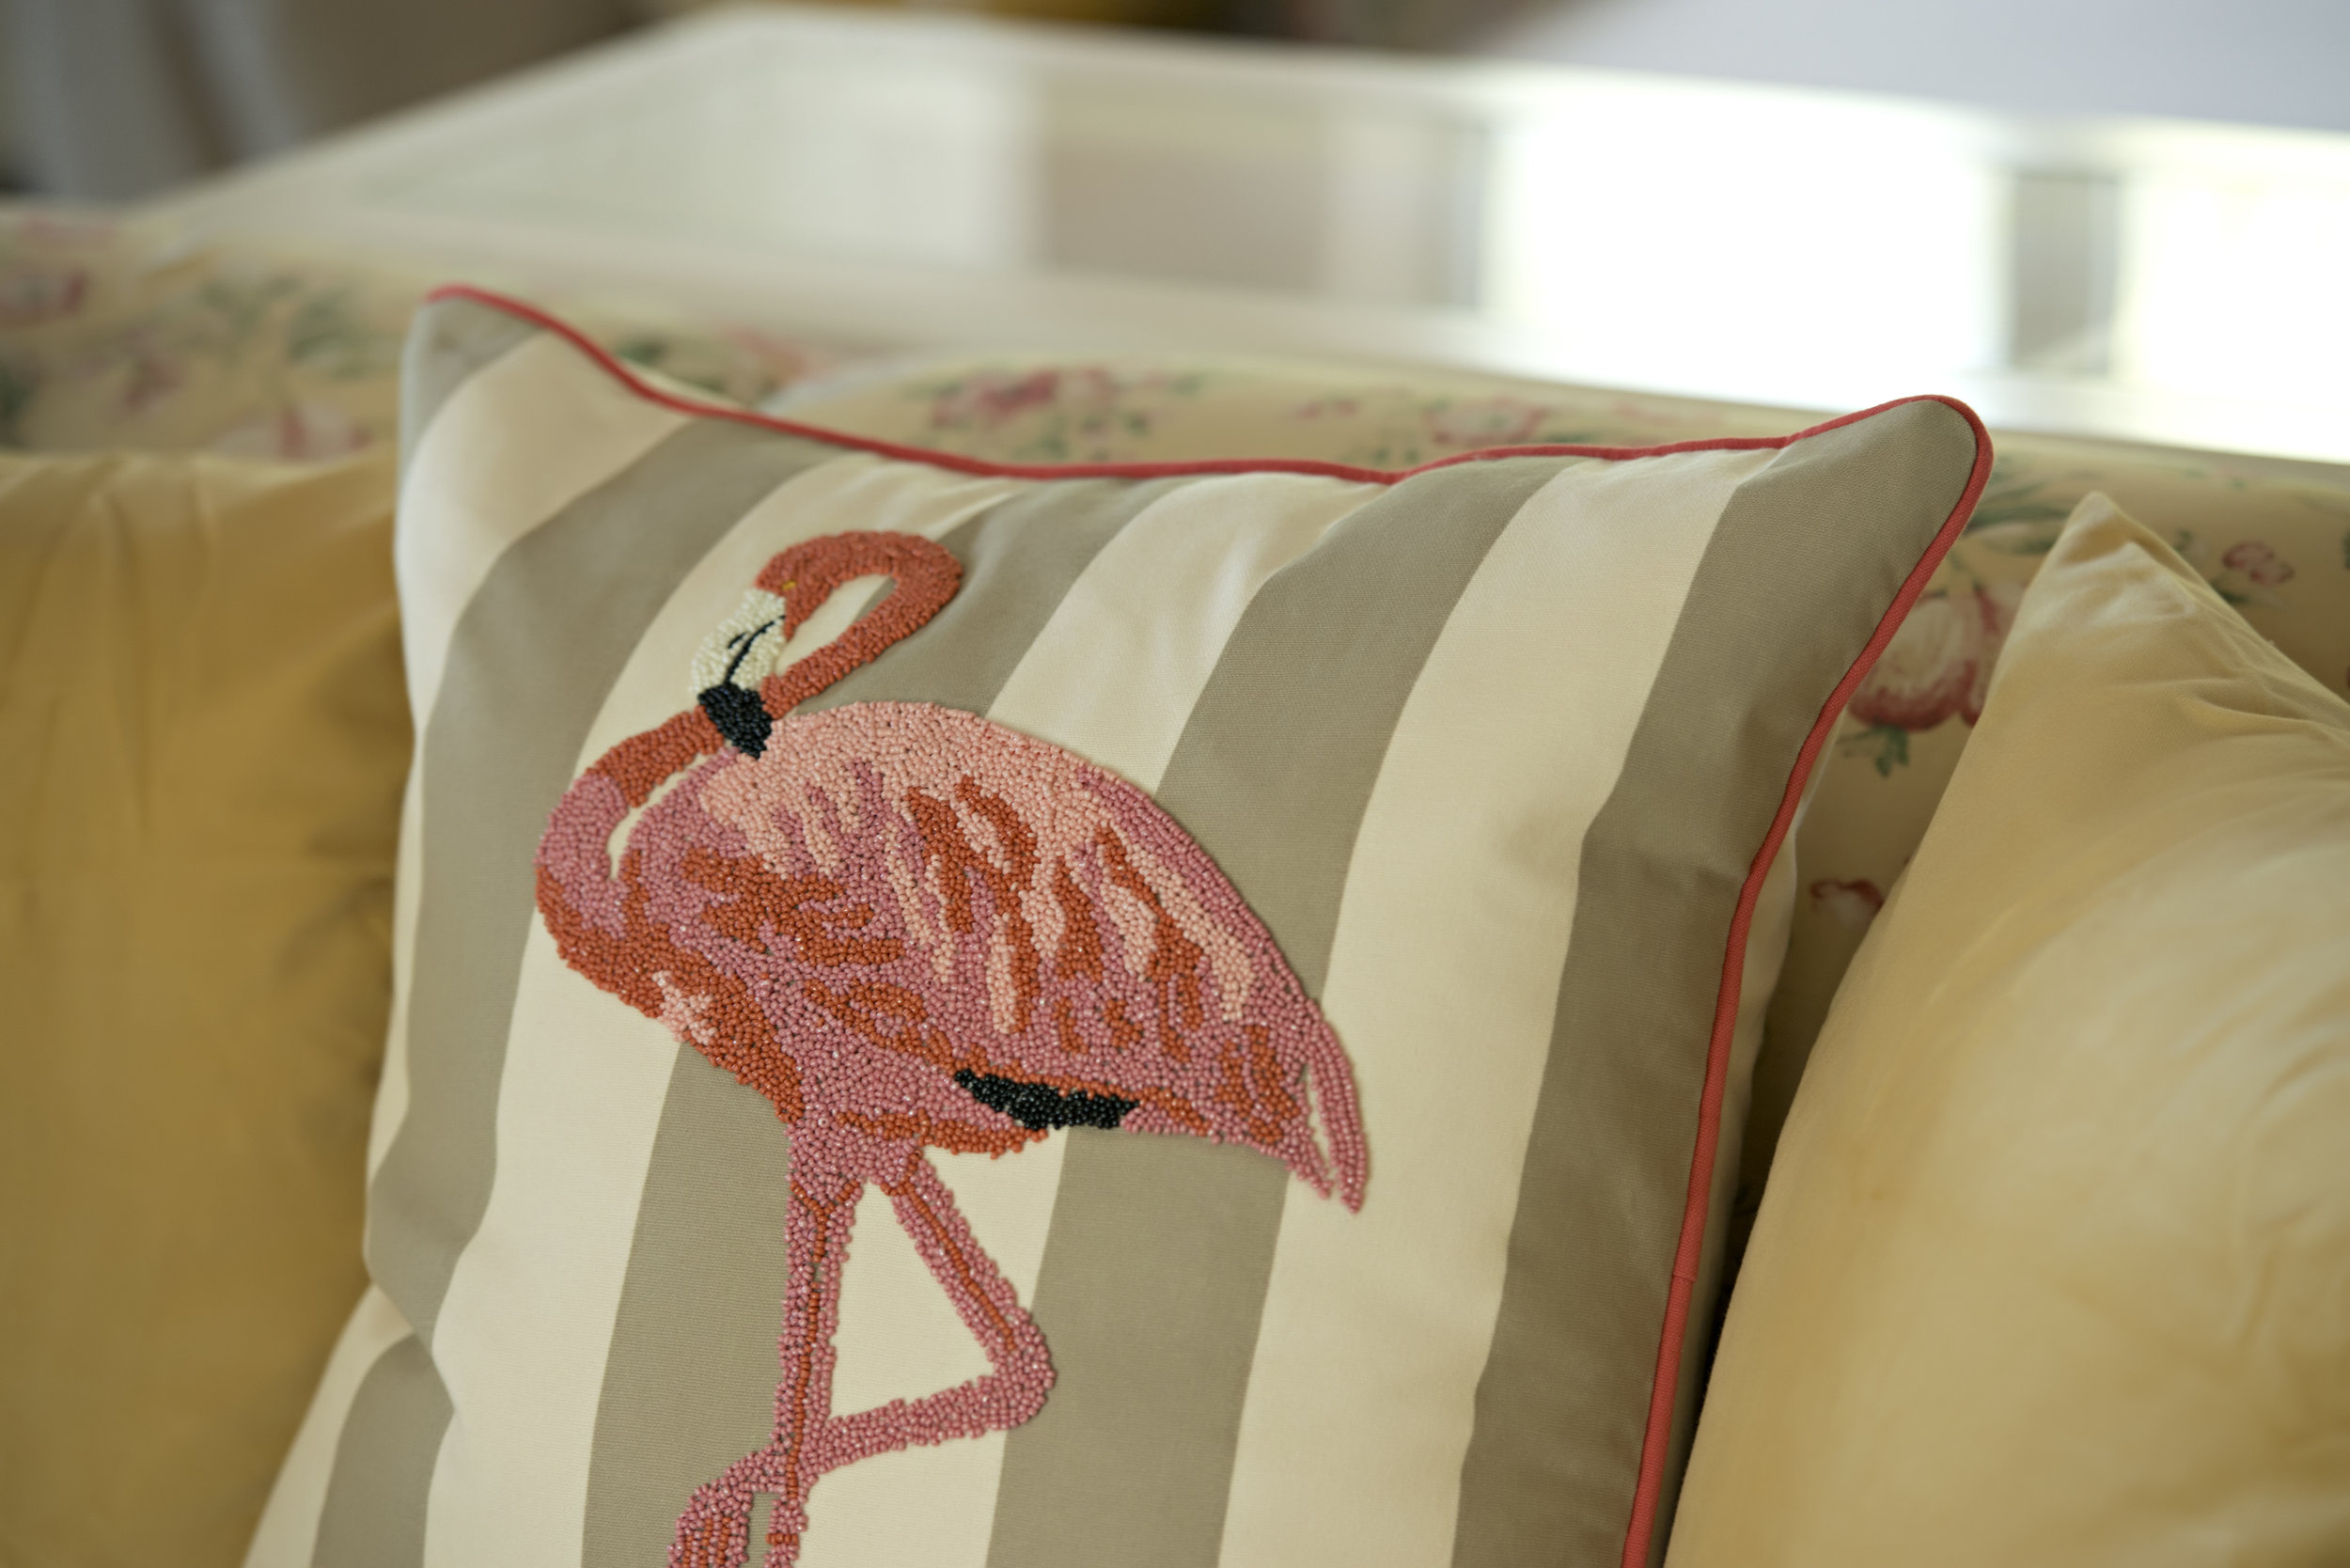 Candace-Plotz-Design-Beach-House-1-Project-Flamingo-Cushion